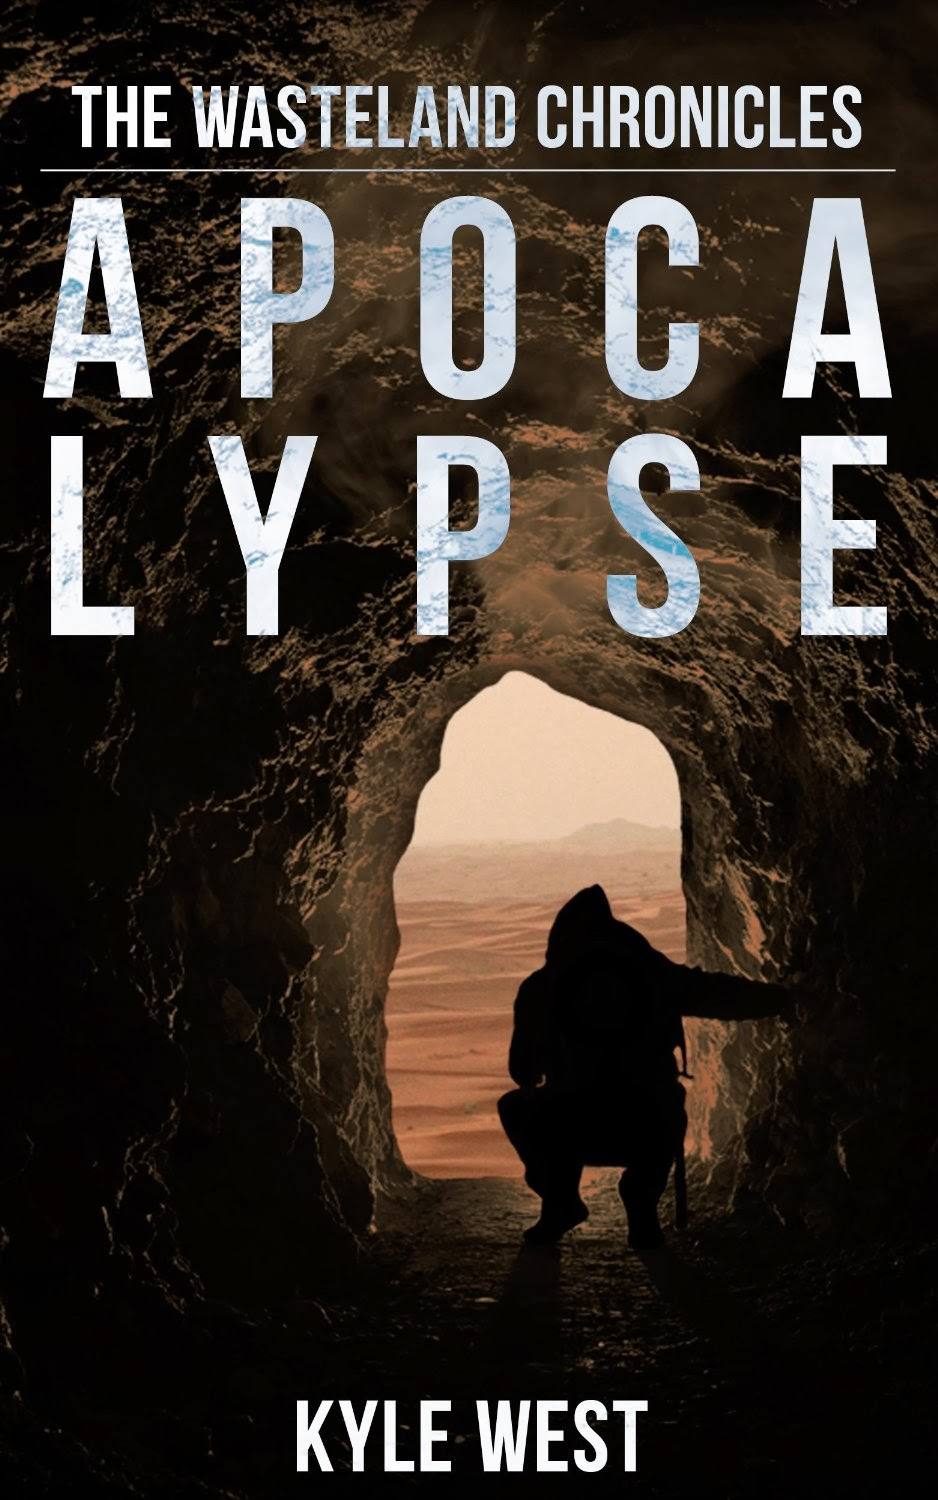 http://www.amazon.com/Apocalypse-Wasteland-Chronicles-Kyle-West-ebook/dp/B00AJF2130/?tag=juleromans-20